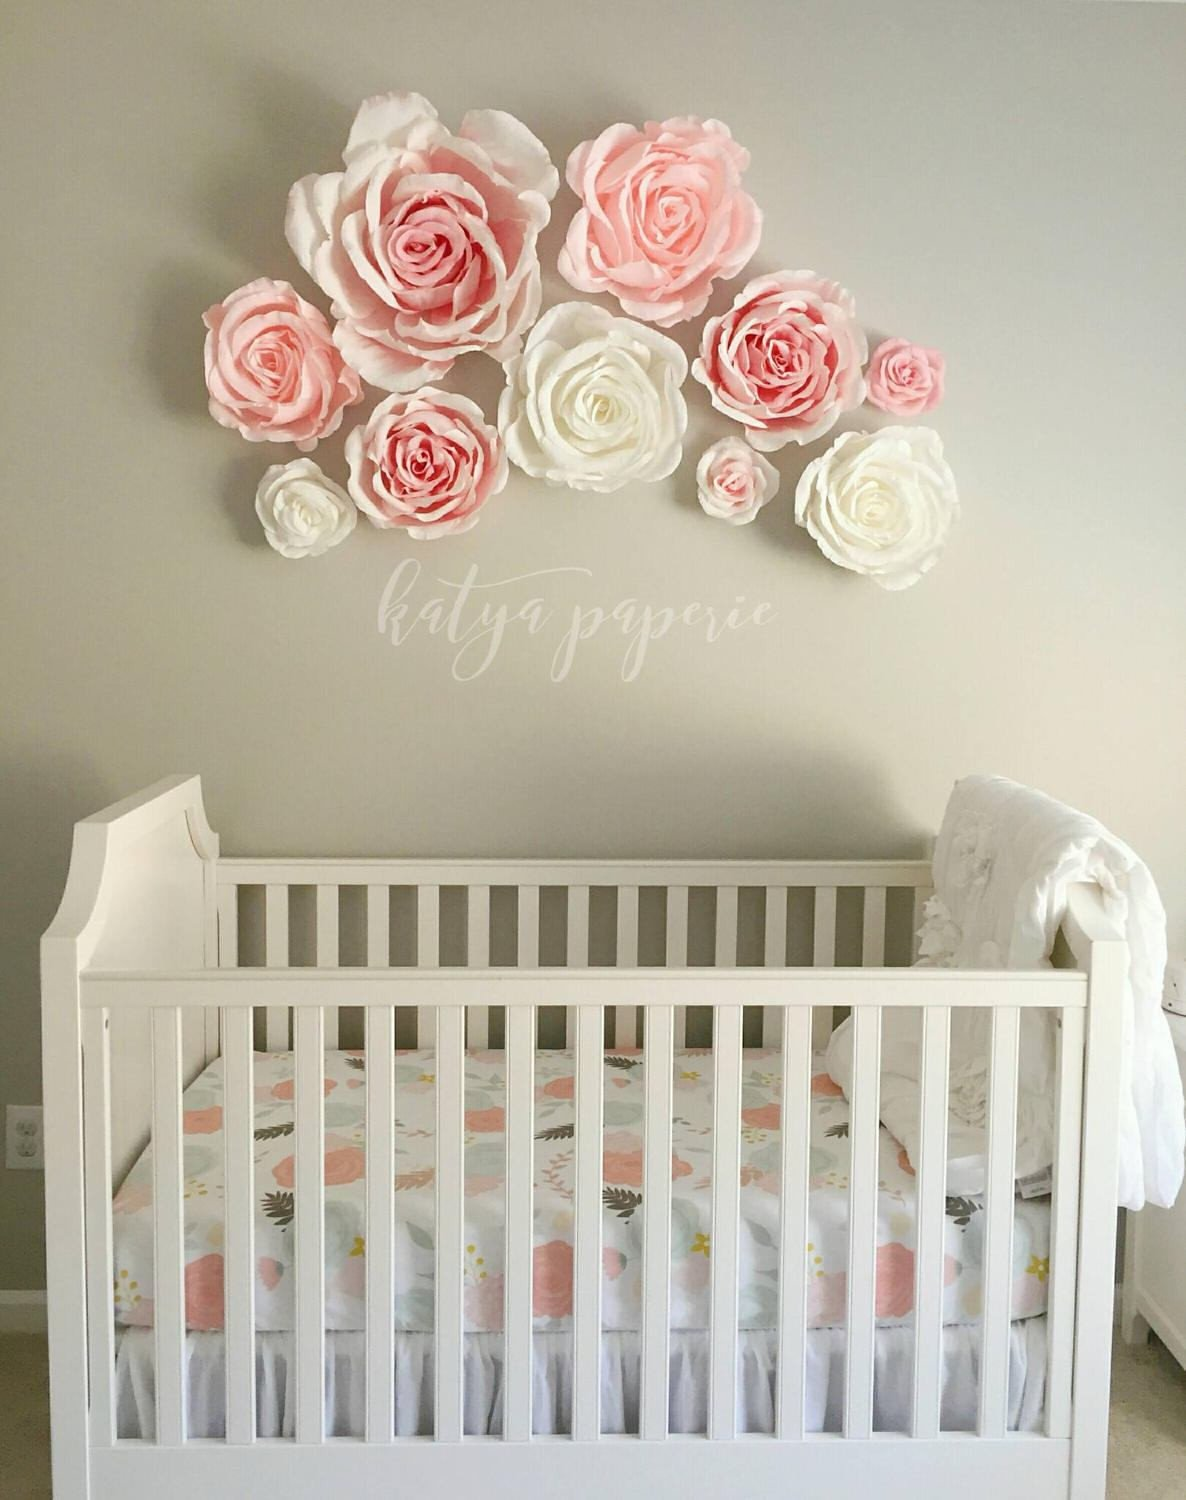 Wall Decor for Baby Room Inspirational Nursery Wall Paper Flowers Paper Flower Wall Display Shop